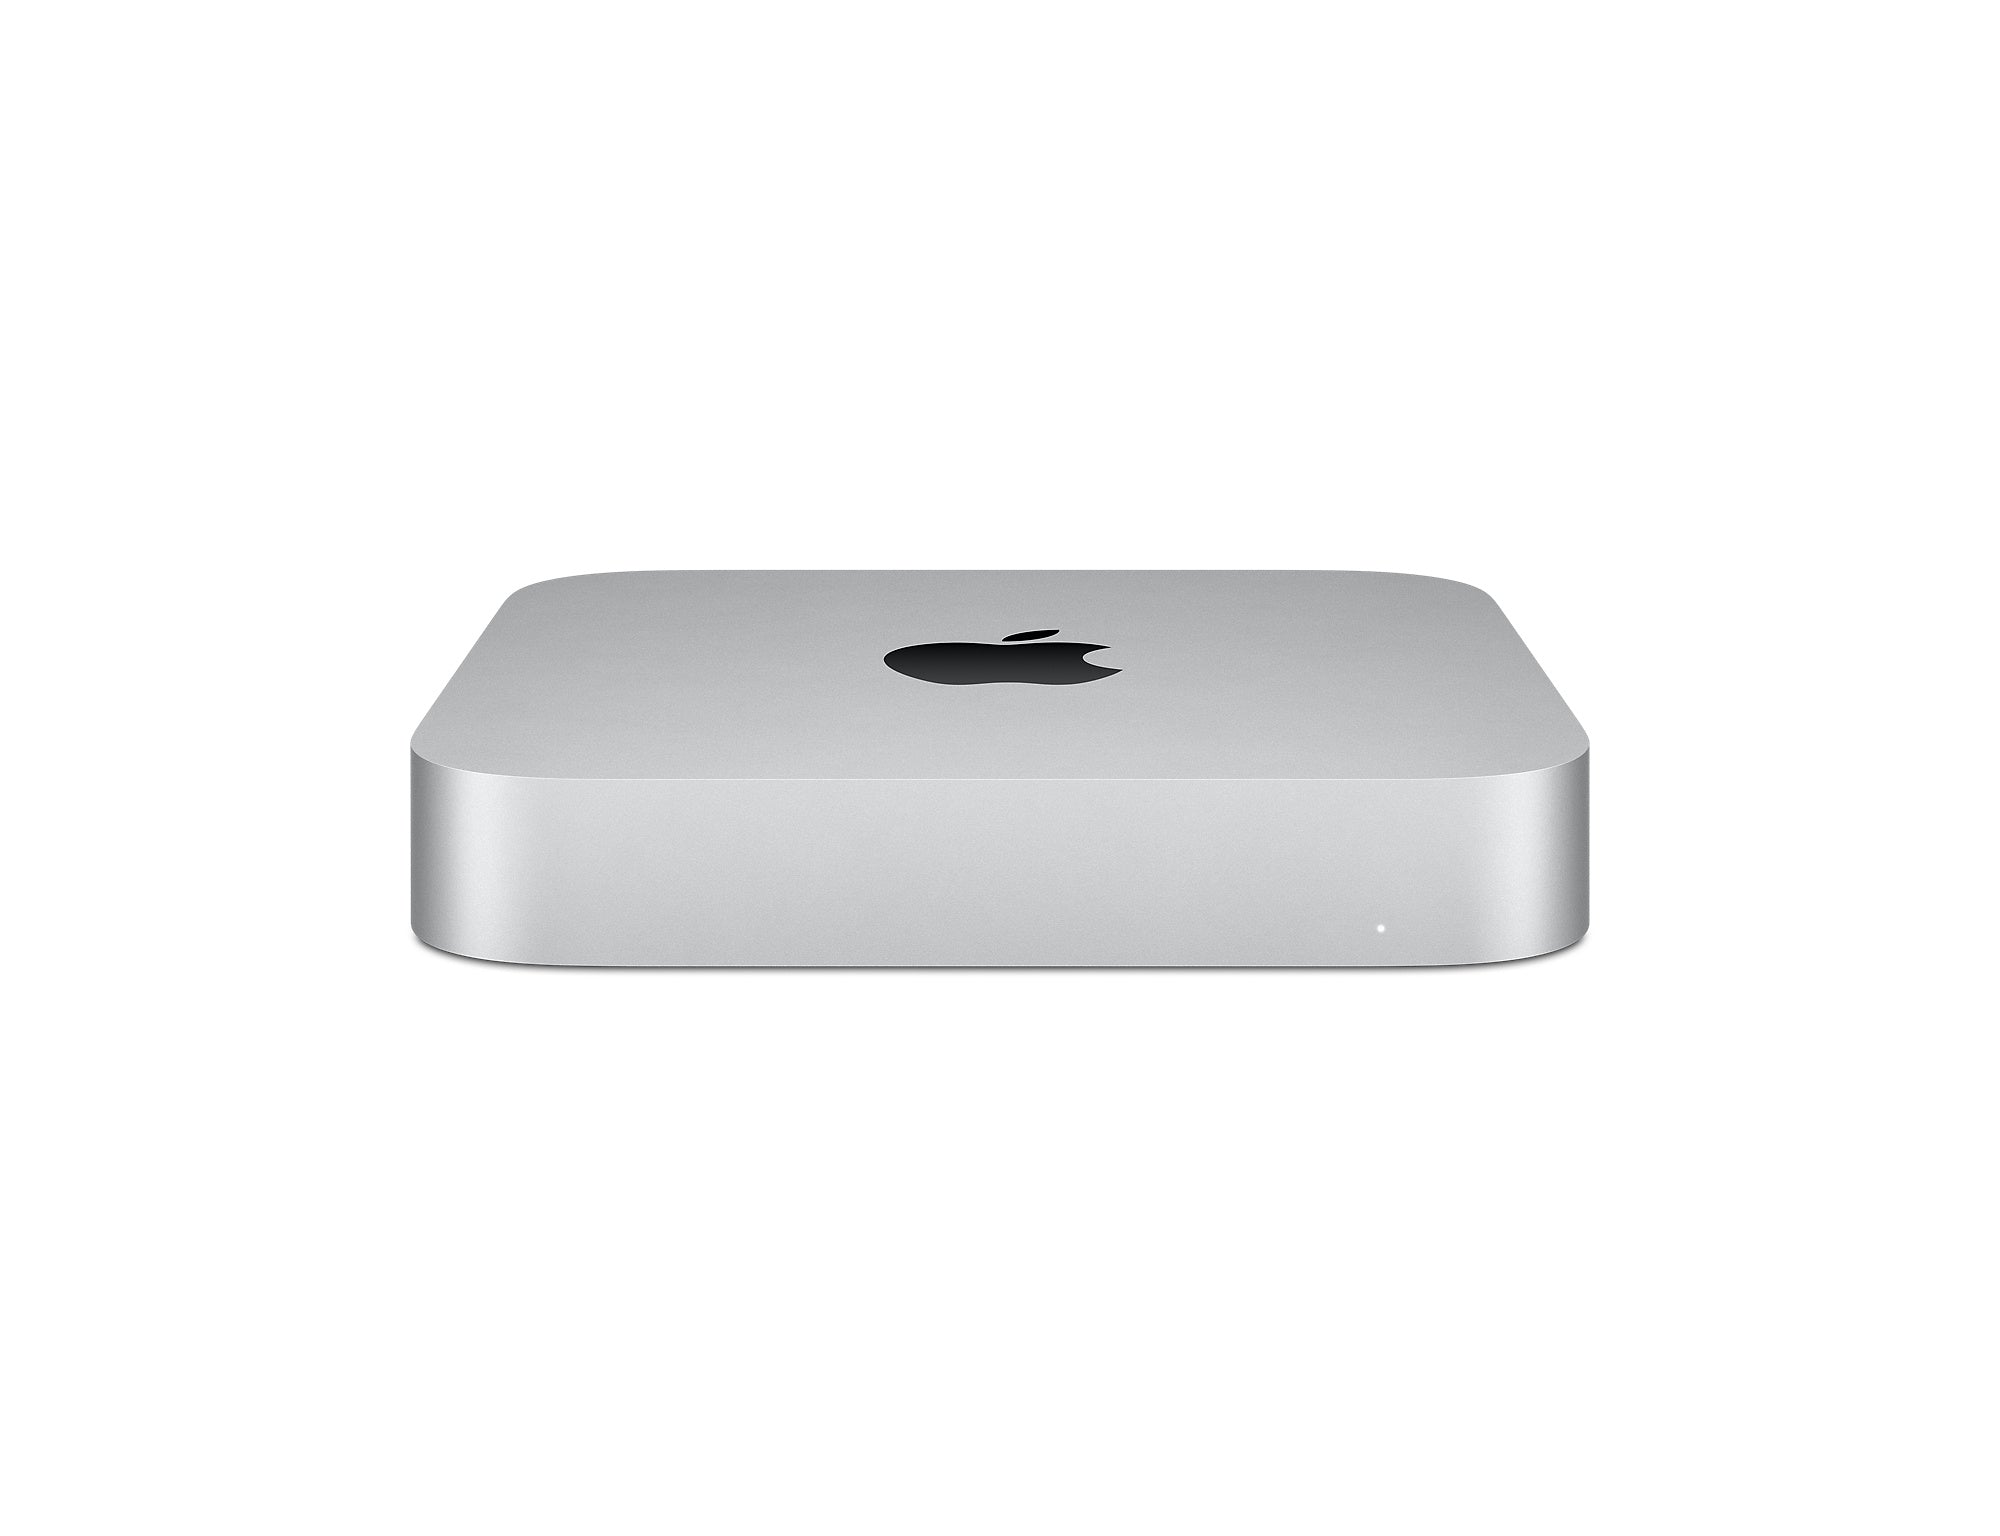 Mac mini: Apple M1 chip with 8 core CPU and 8 core GPU, 512GB SSD